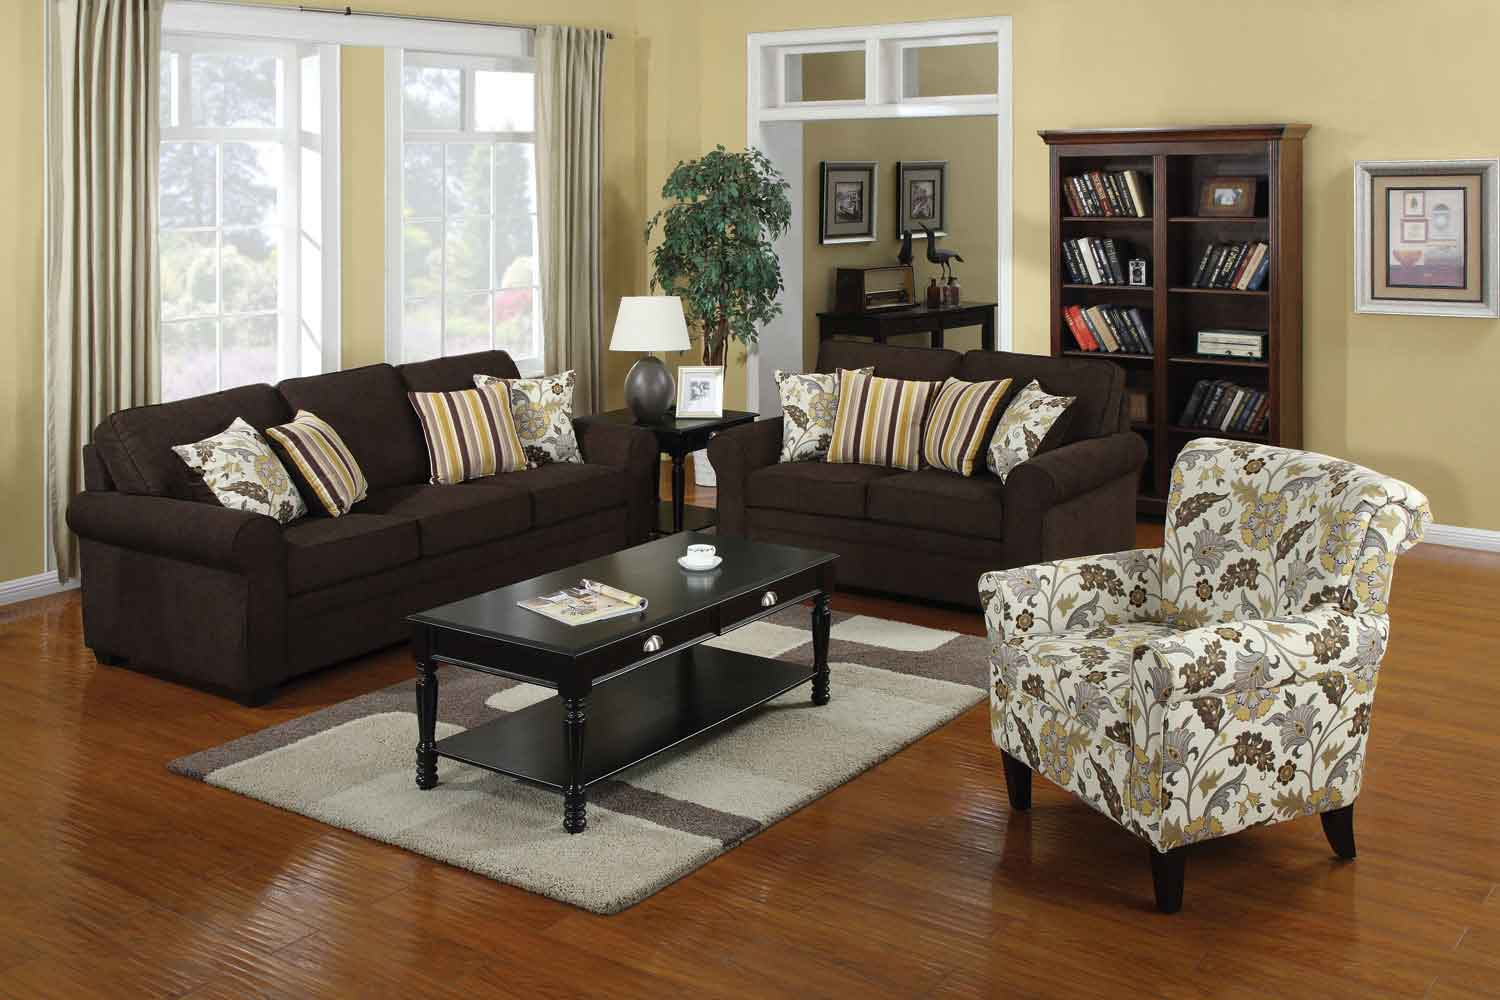 Coaster rosalie living room set brown black 504241 for Matching living room furniture sets